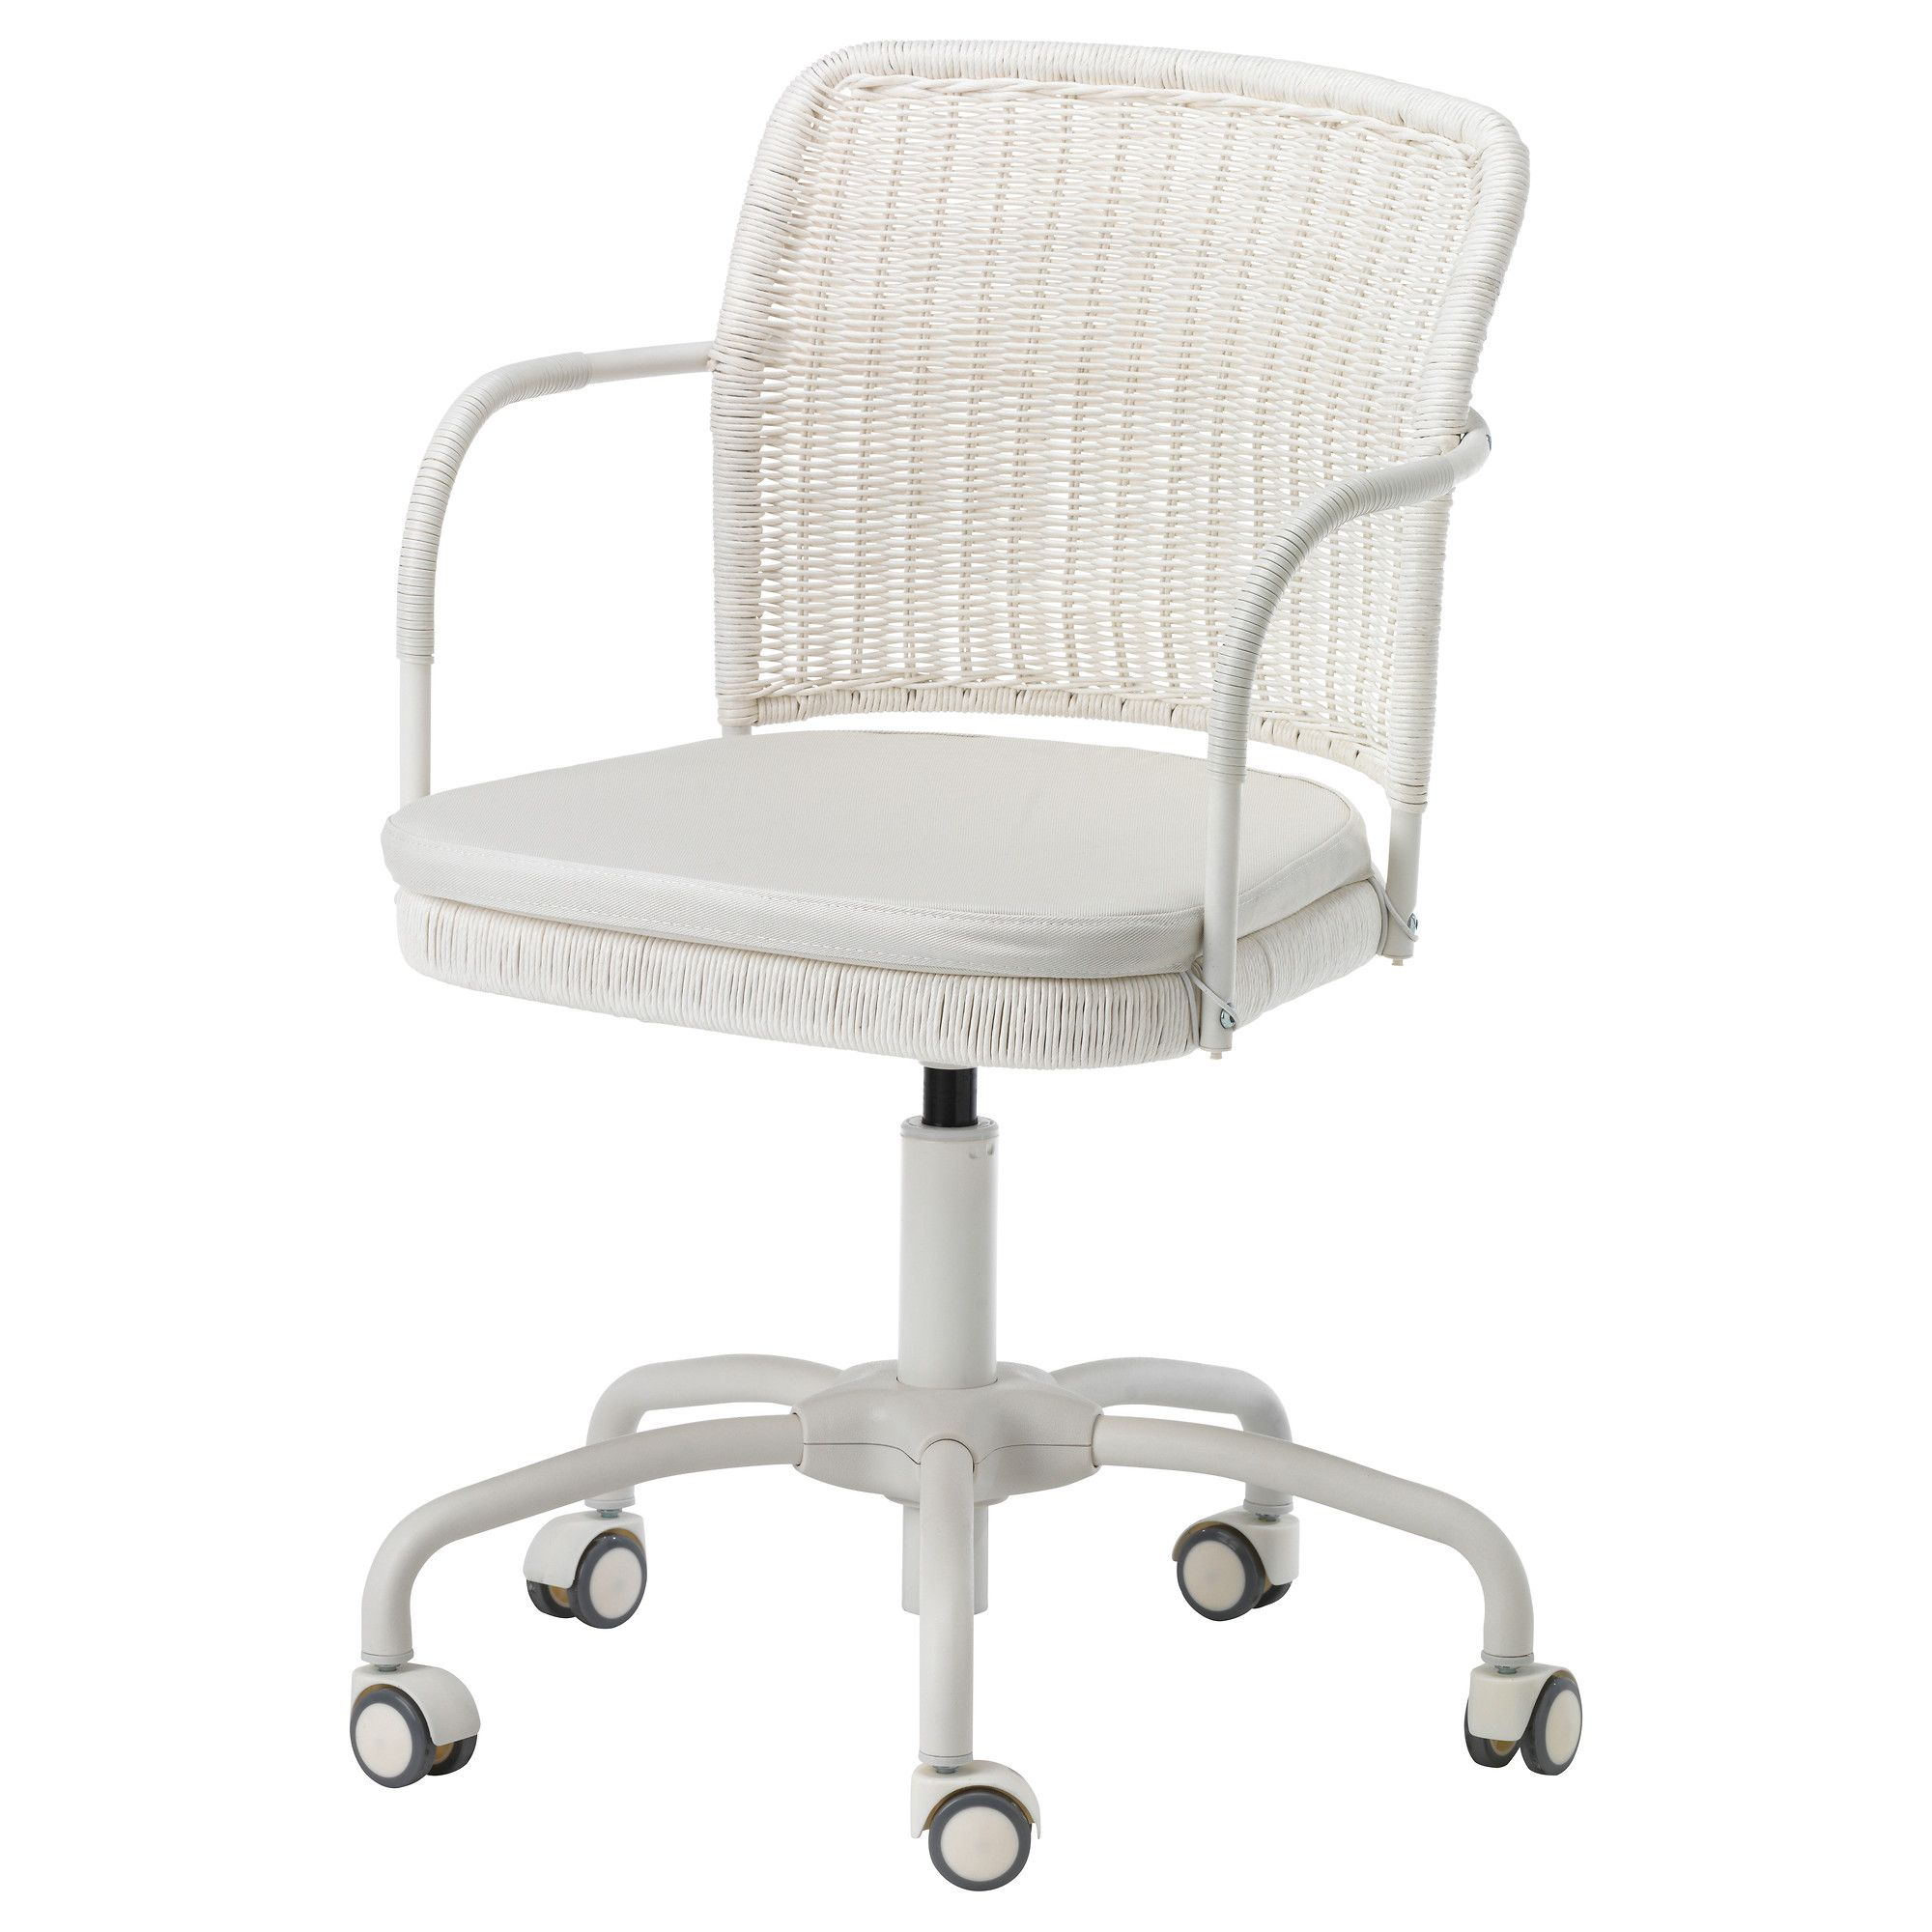 Charmant My DIY Office Project!! GREGOR Swivel Chair   Vittaryd White   IKEA Office  Chair, Wicker